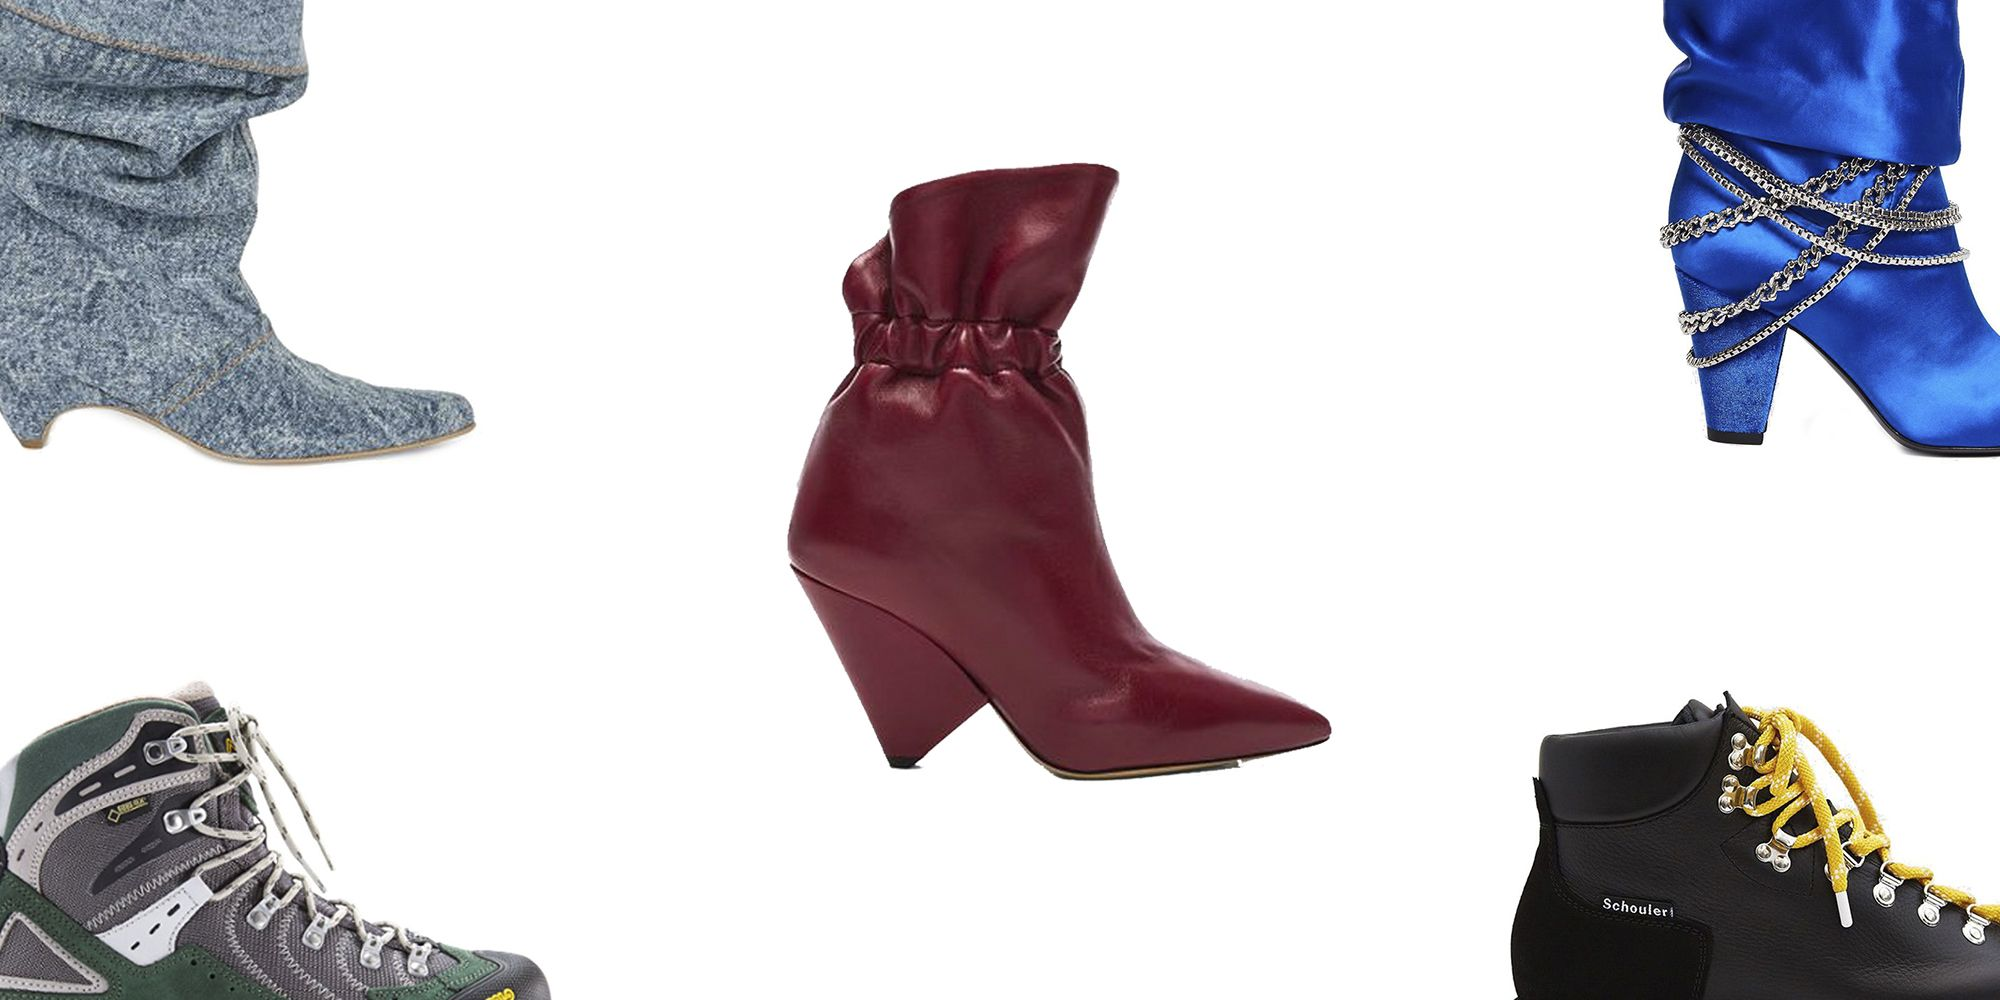 d4cdd6e39de 4 Must-Have Boot Styles To Own This Fall - 12 Best Boots of Fall 2018